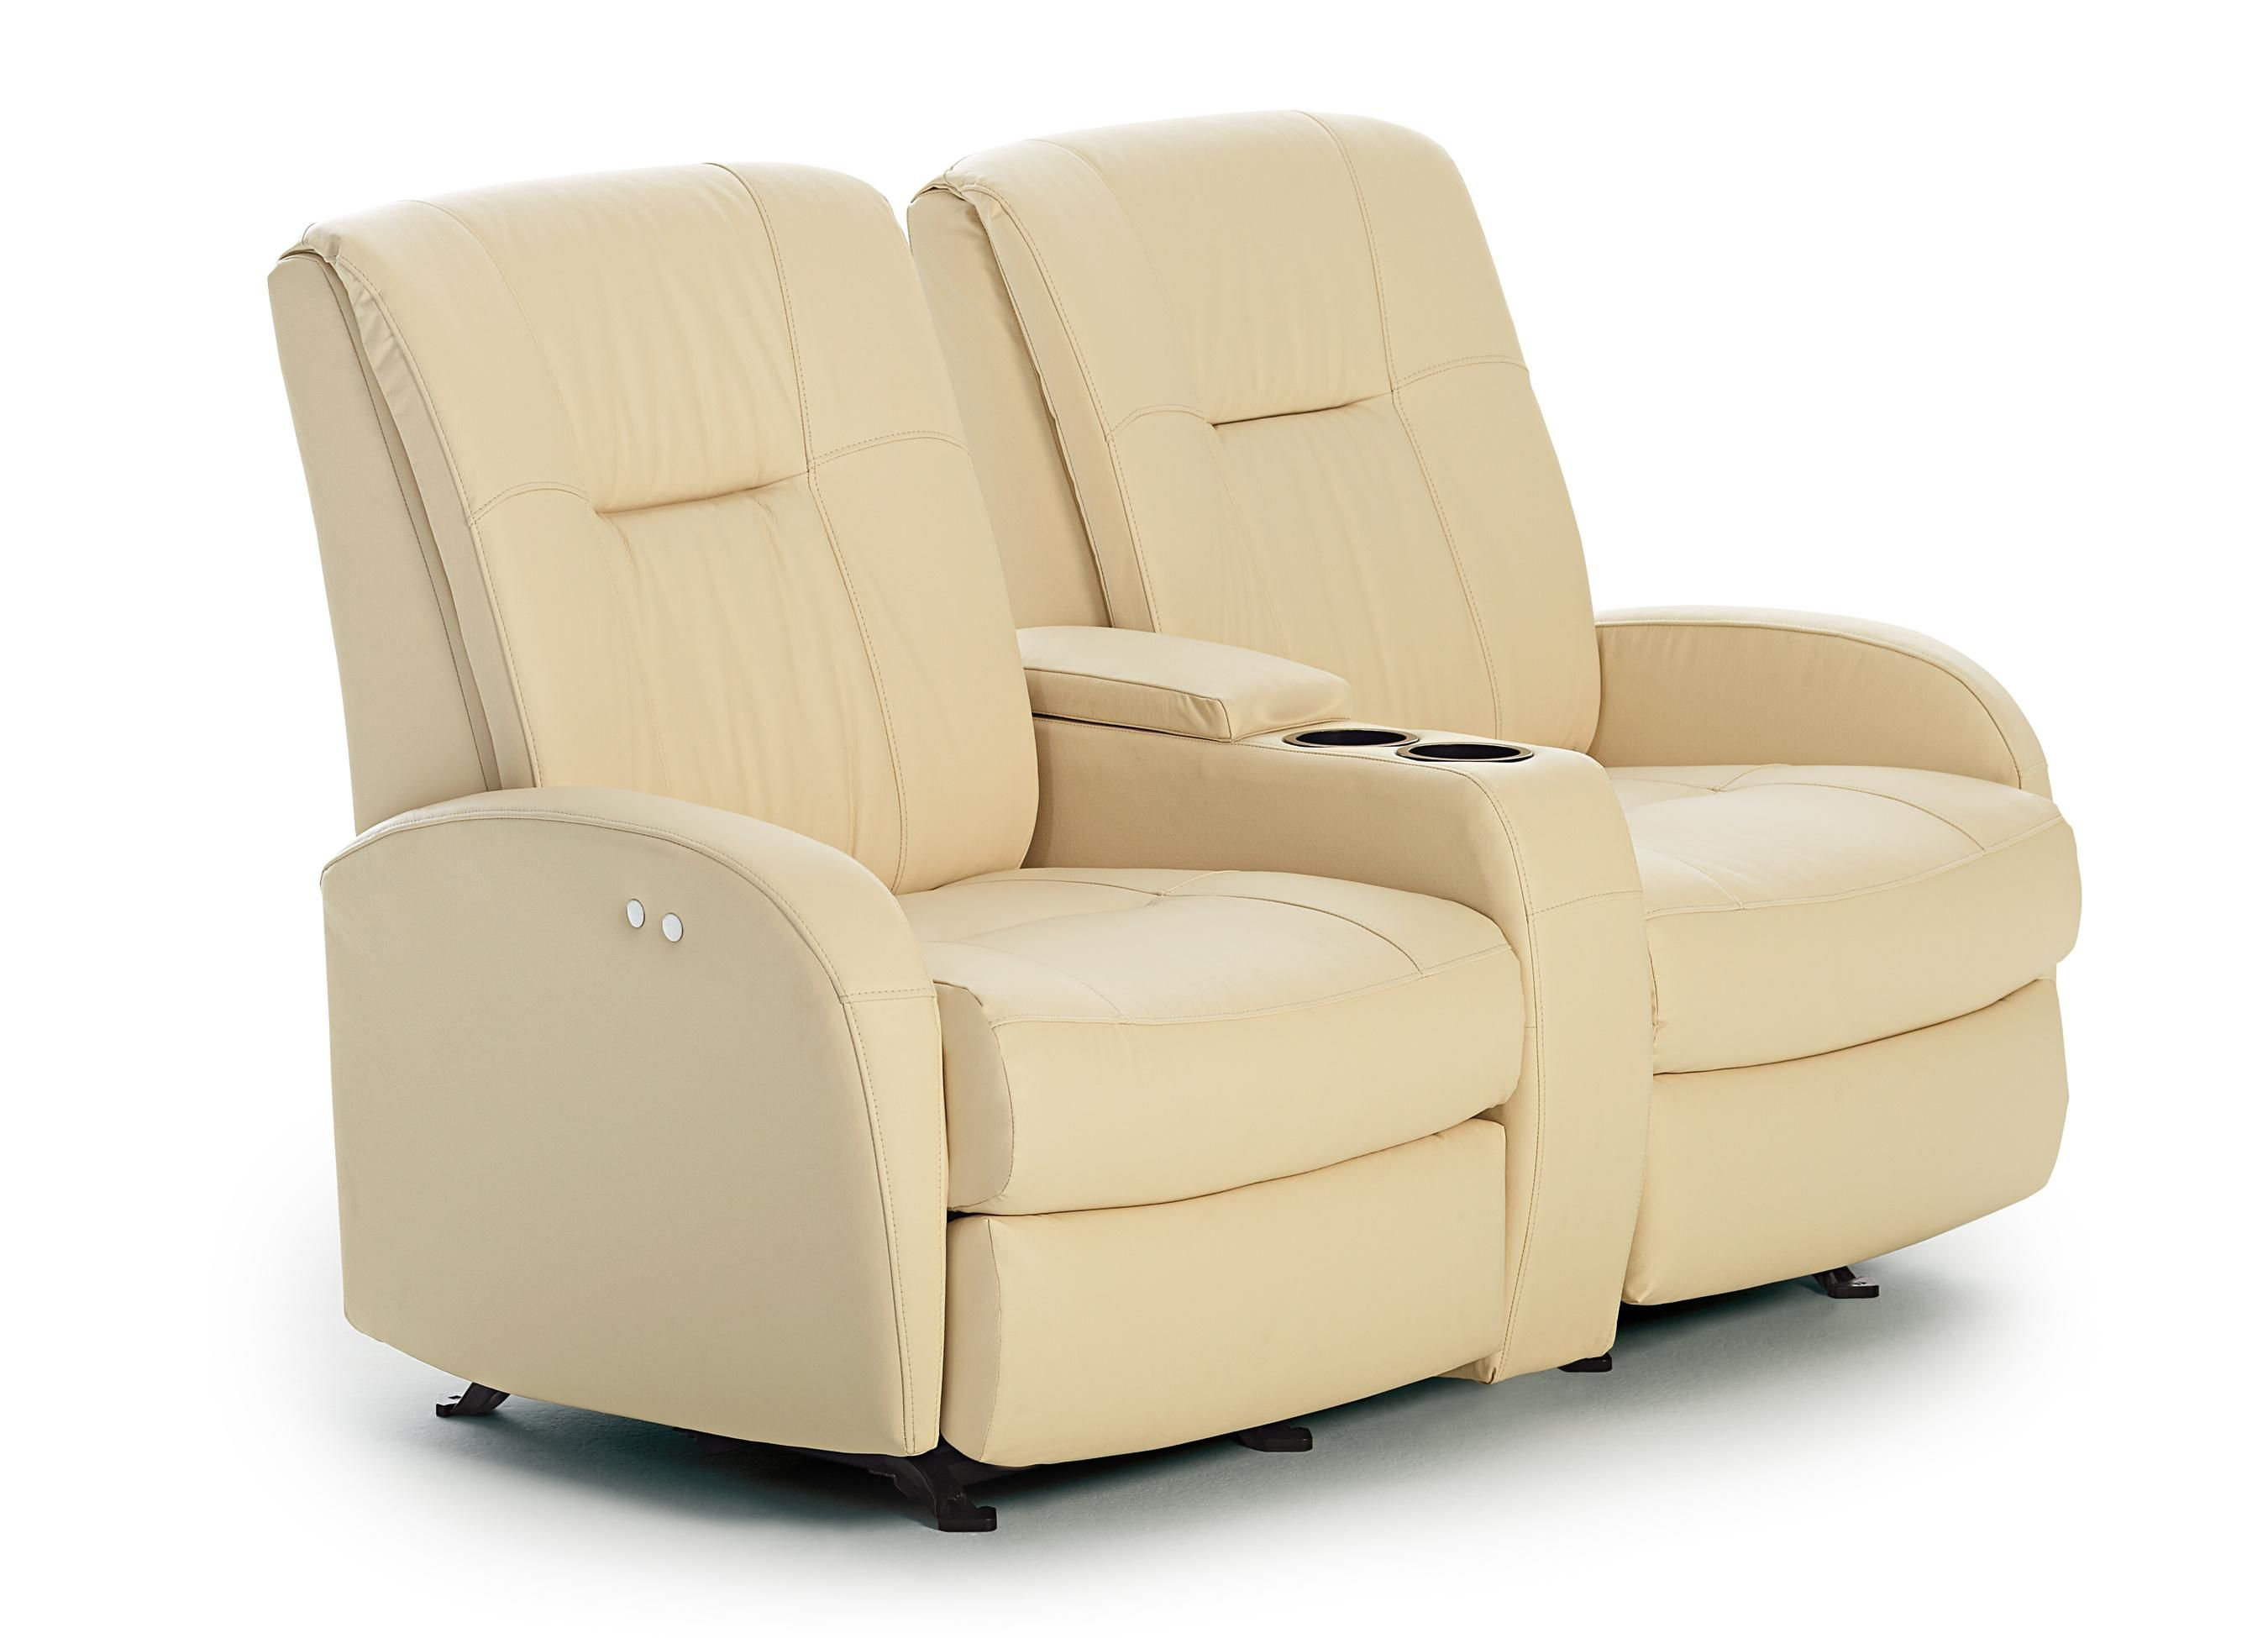 Remarkable Reclining Loveseat With Console Ruddick Contemporary Space Saver Power Reclining Loveseat With Console  sc 1 st  Pinterest : power reclining loveseats with console - islam-shia.org